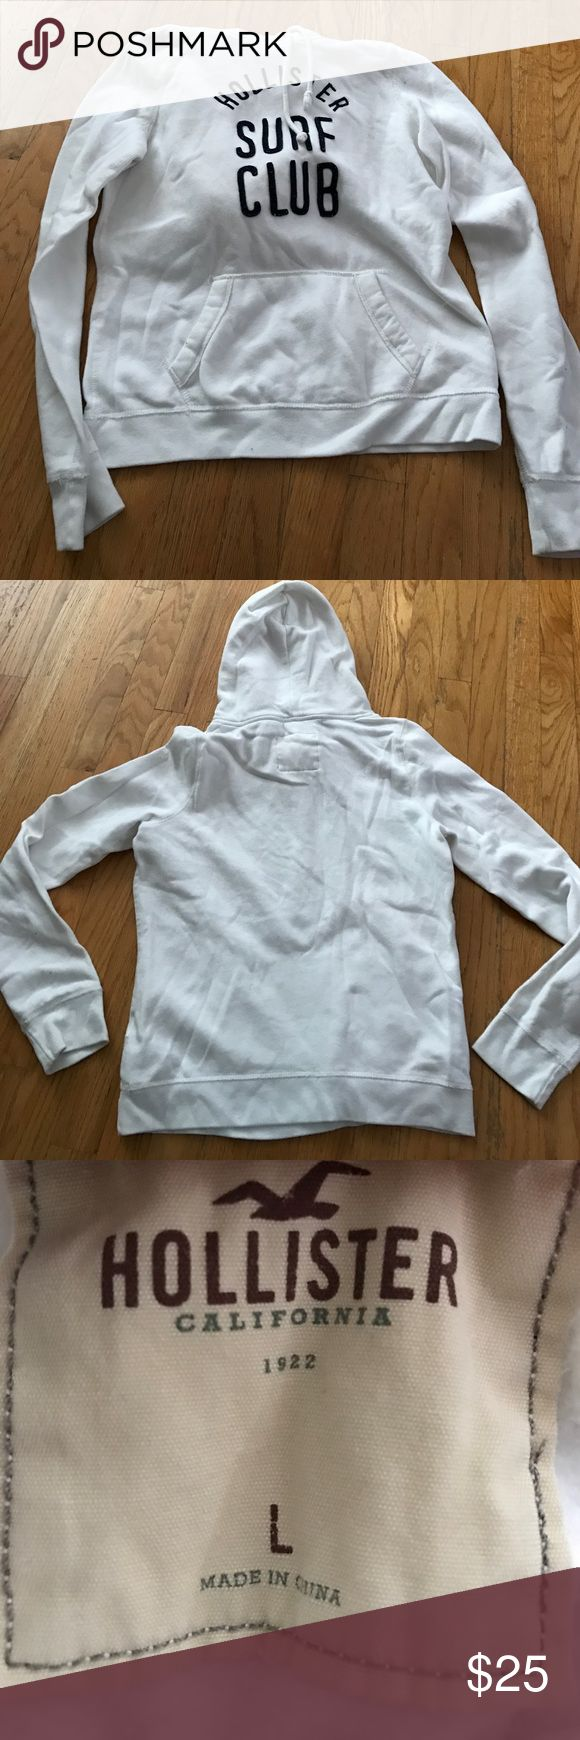 Hollister Sweatshirt! Blue and white Hollister sweatshirt! Great condition but no longer is my style. Only worn twice. Super cozy and comfy for any outfit or season! Please use the offer button! Hollister Tops Sweatshirts & Hoodies